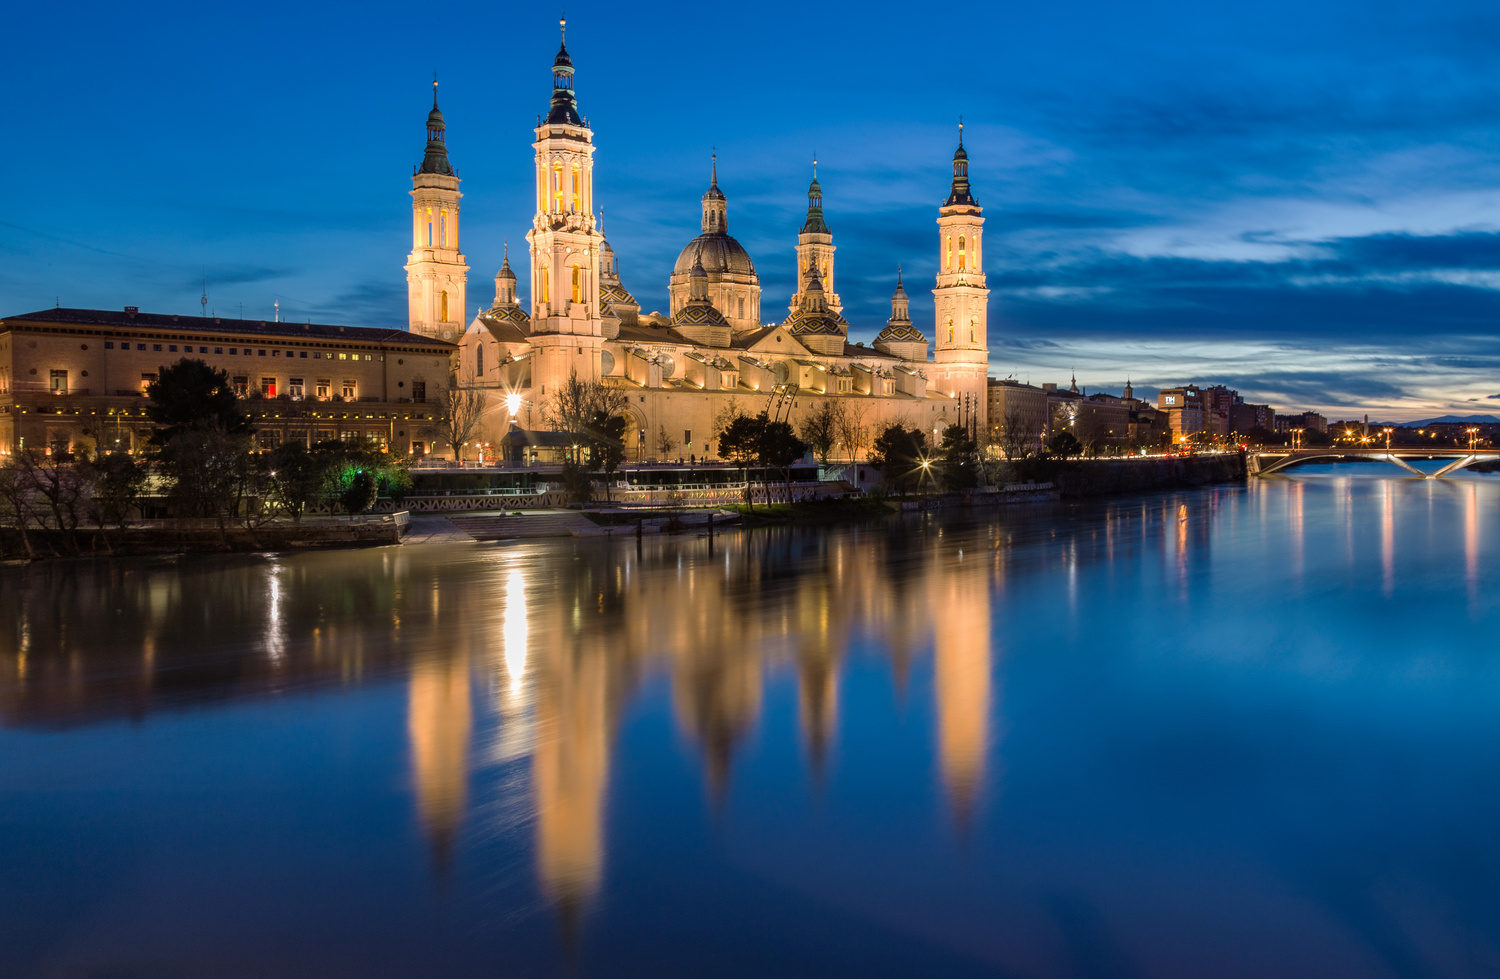 Reflected Basilica of Our Lady of the Pillar by Alexandru Pastor